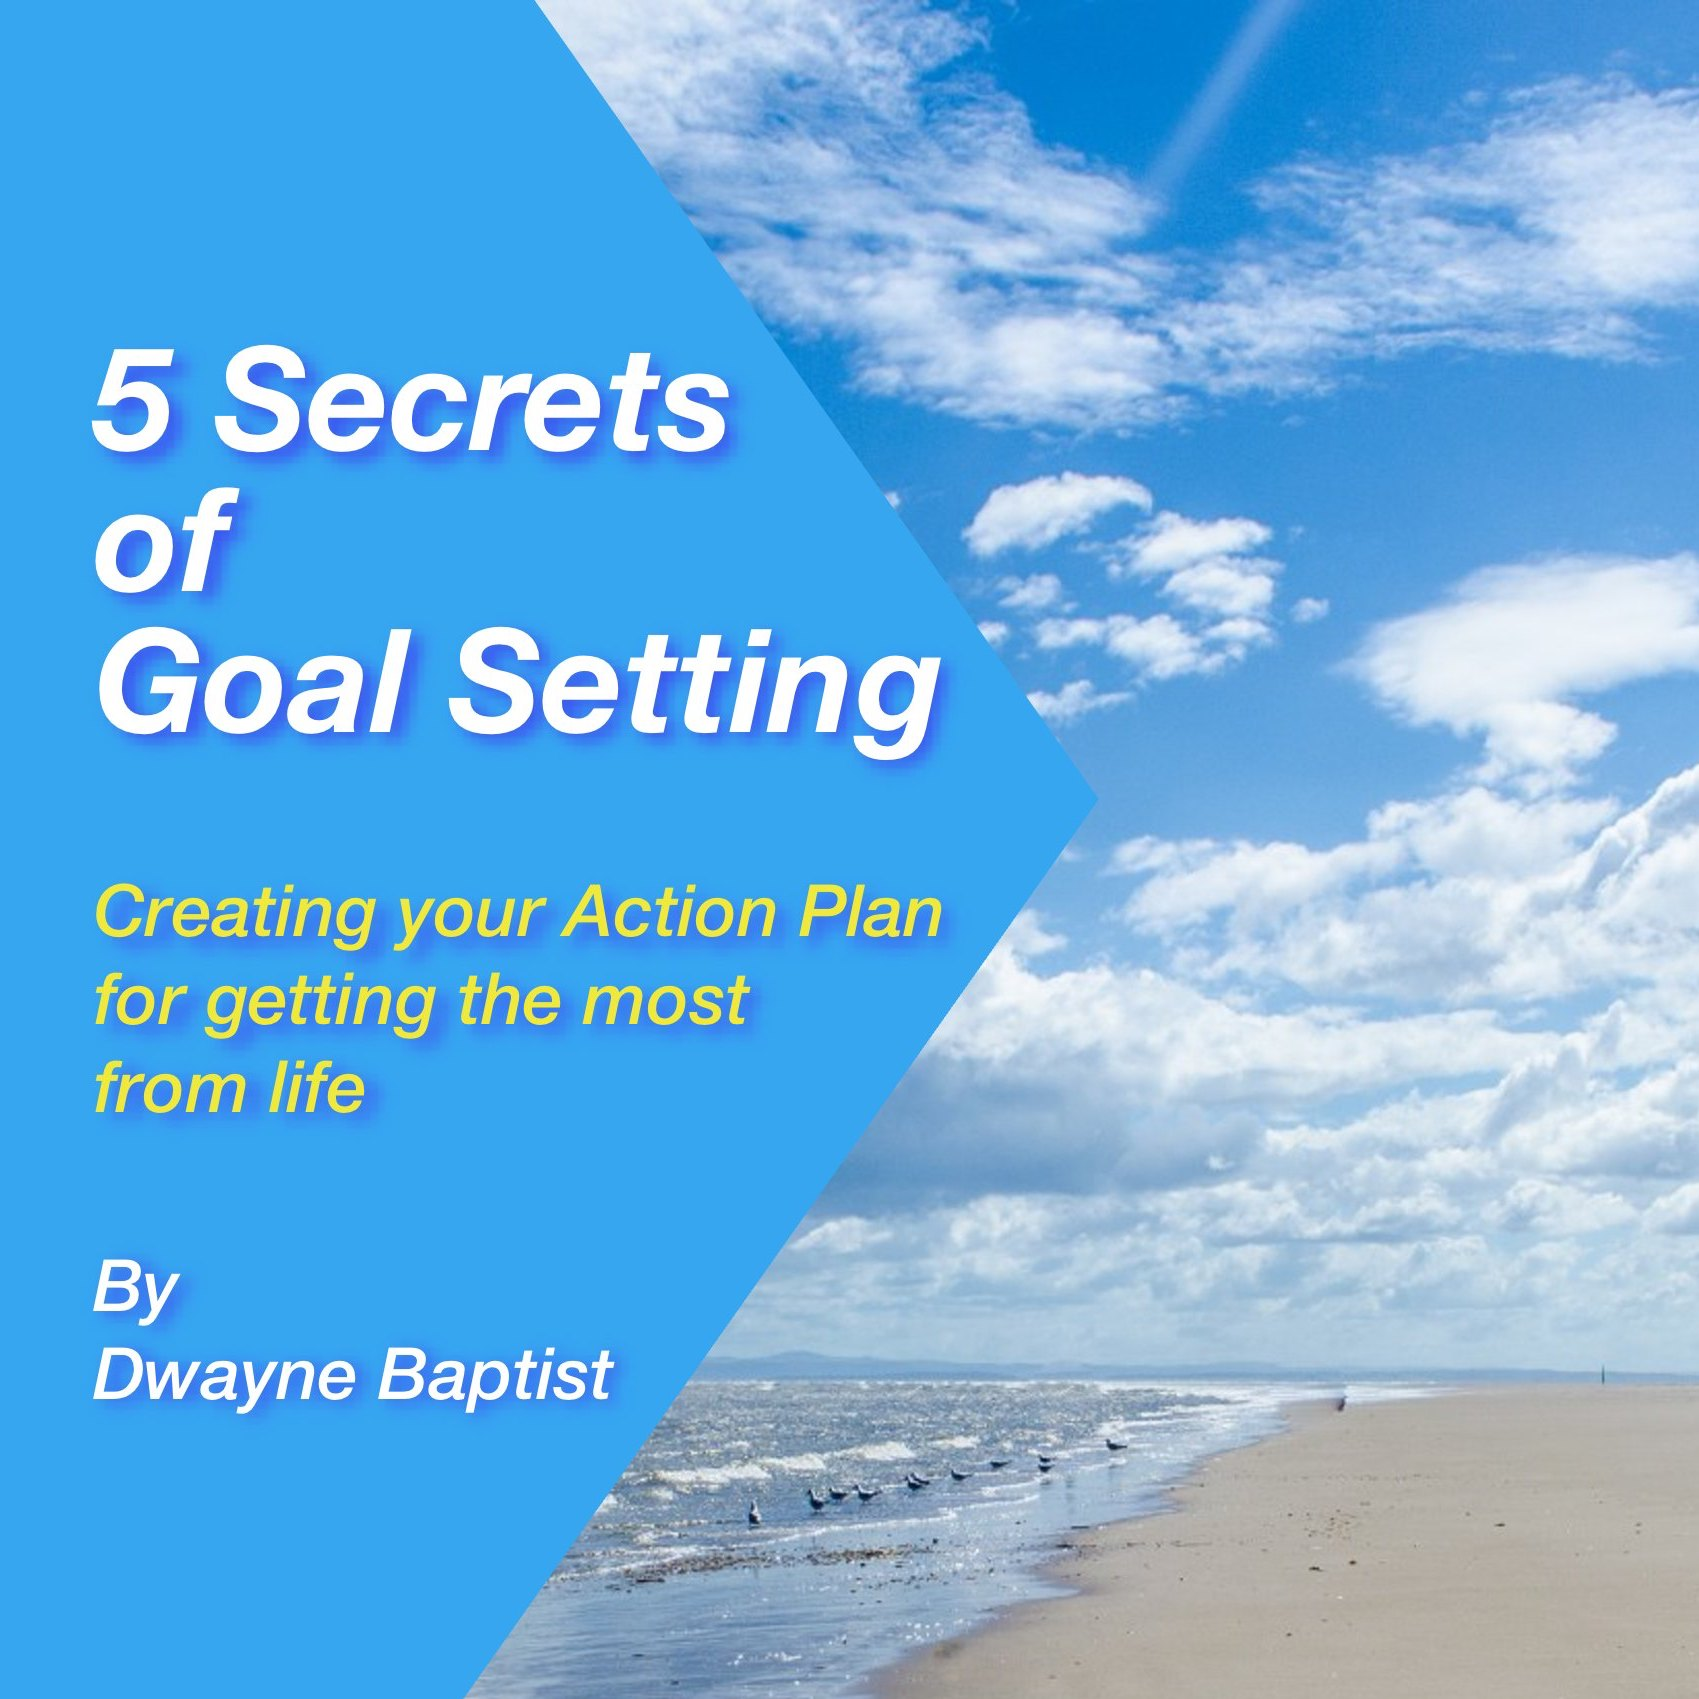 5 Secrets of Goal Setting, by Dwayne Baptist